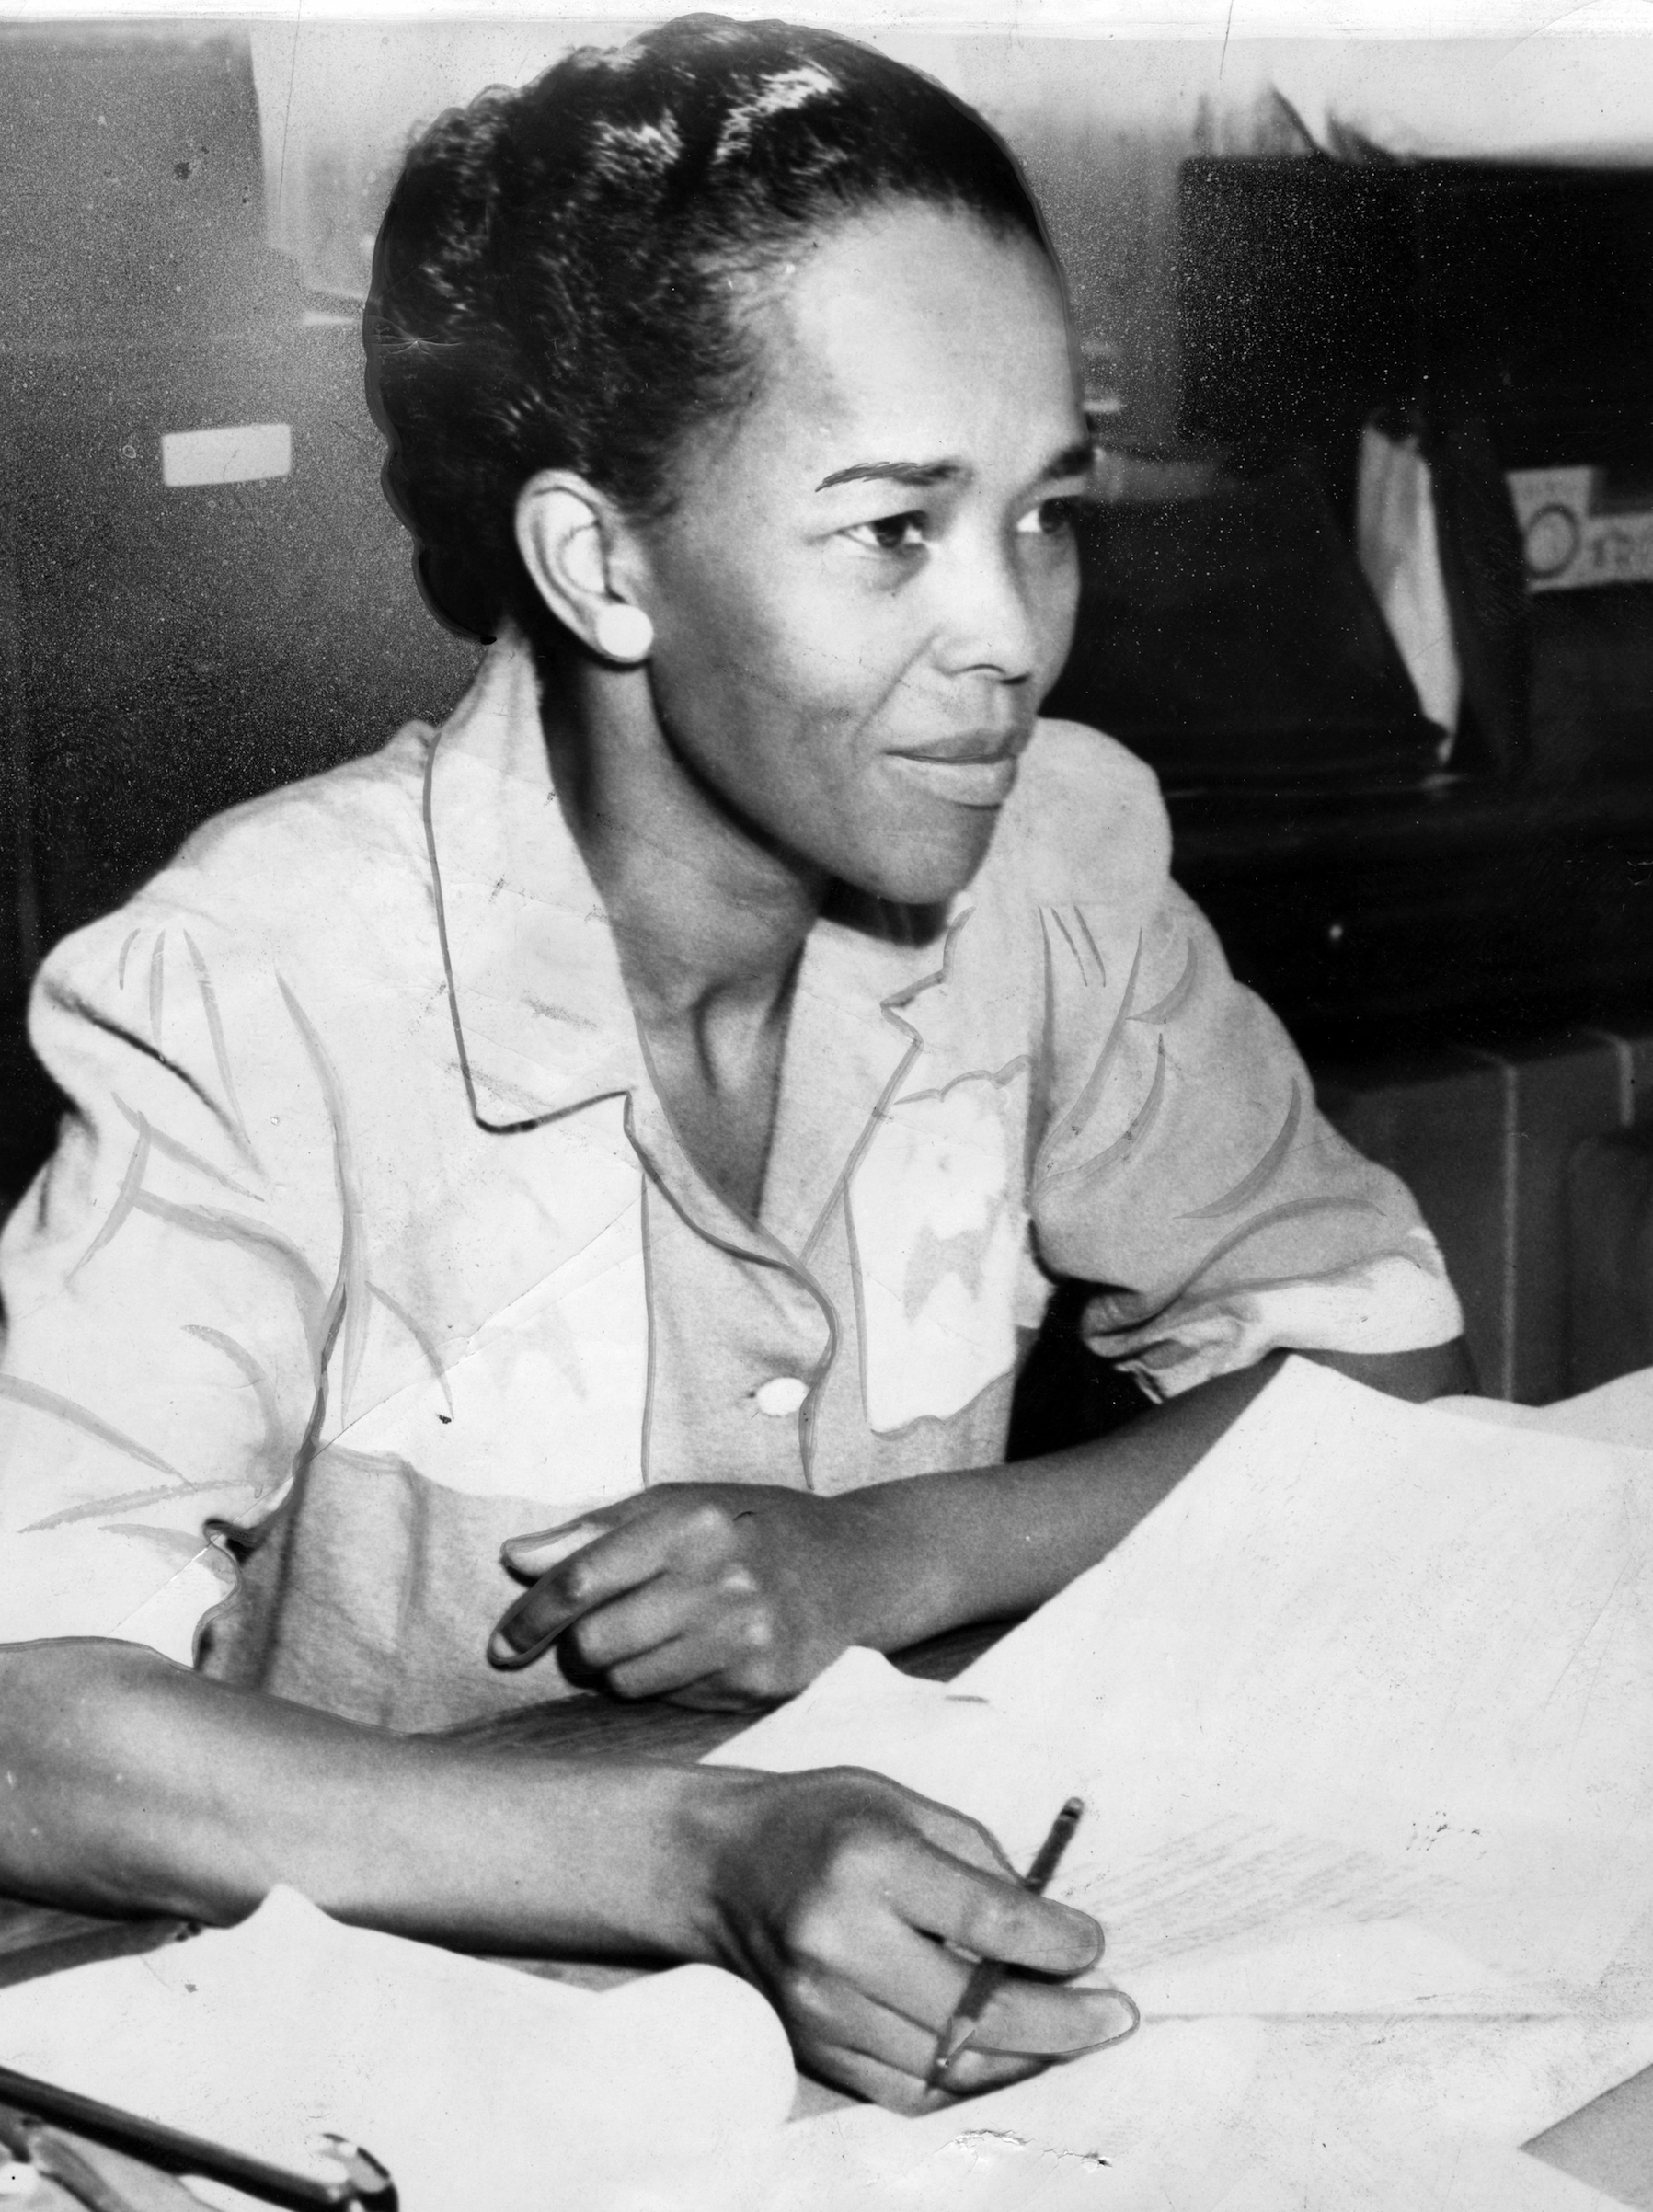 A photograph of Ella Baker as NAACP Hatfield representative, behind a desk with paperwork, Sept. 18, 1941. African American history facts